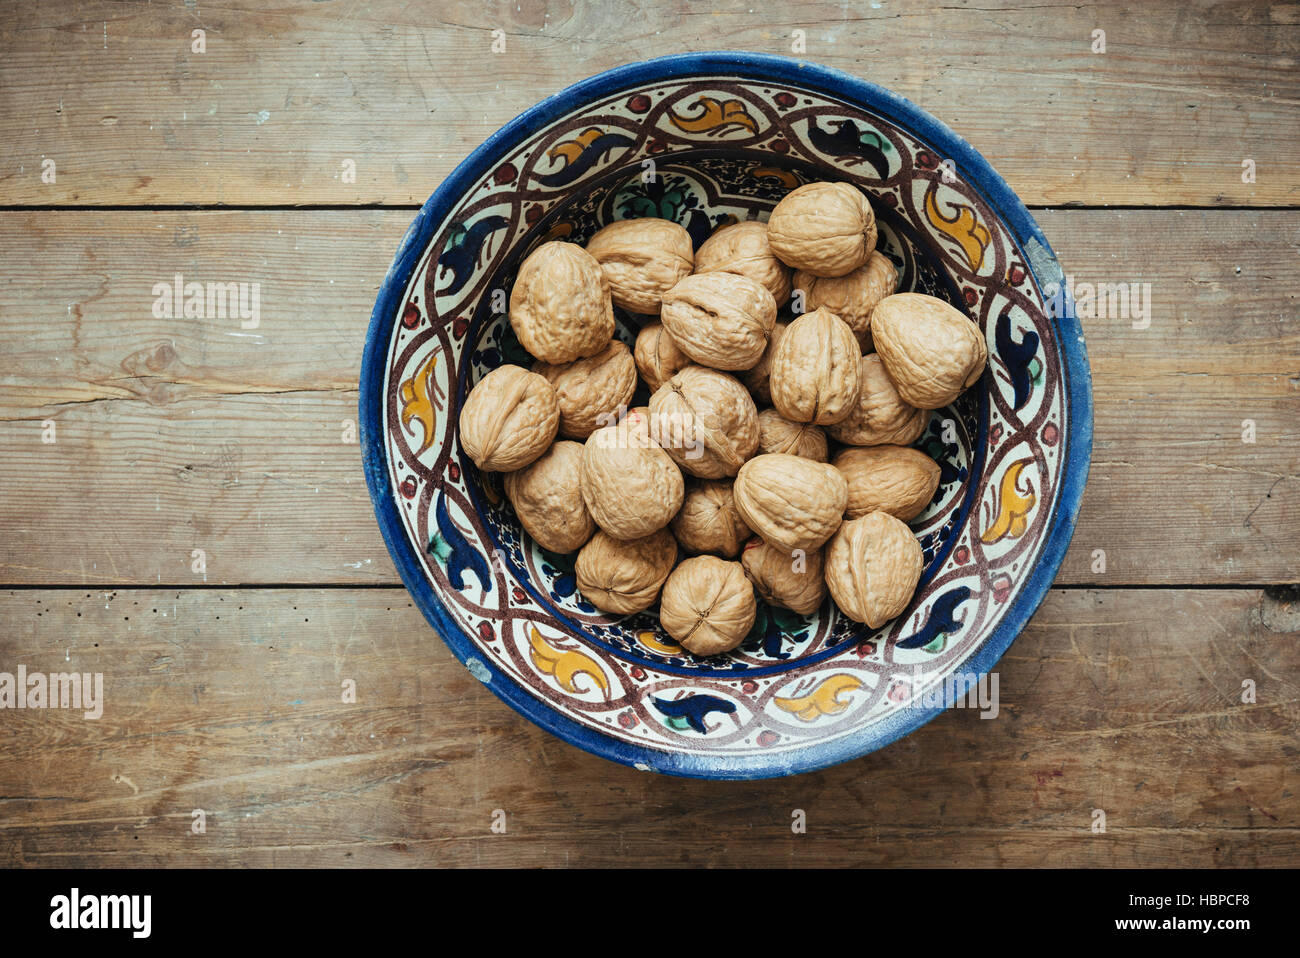 Walnuts in a Moroccan bowl - Stock Image